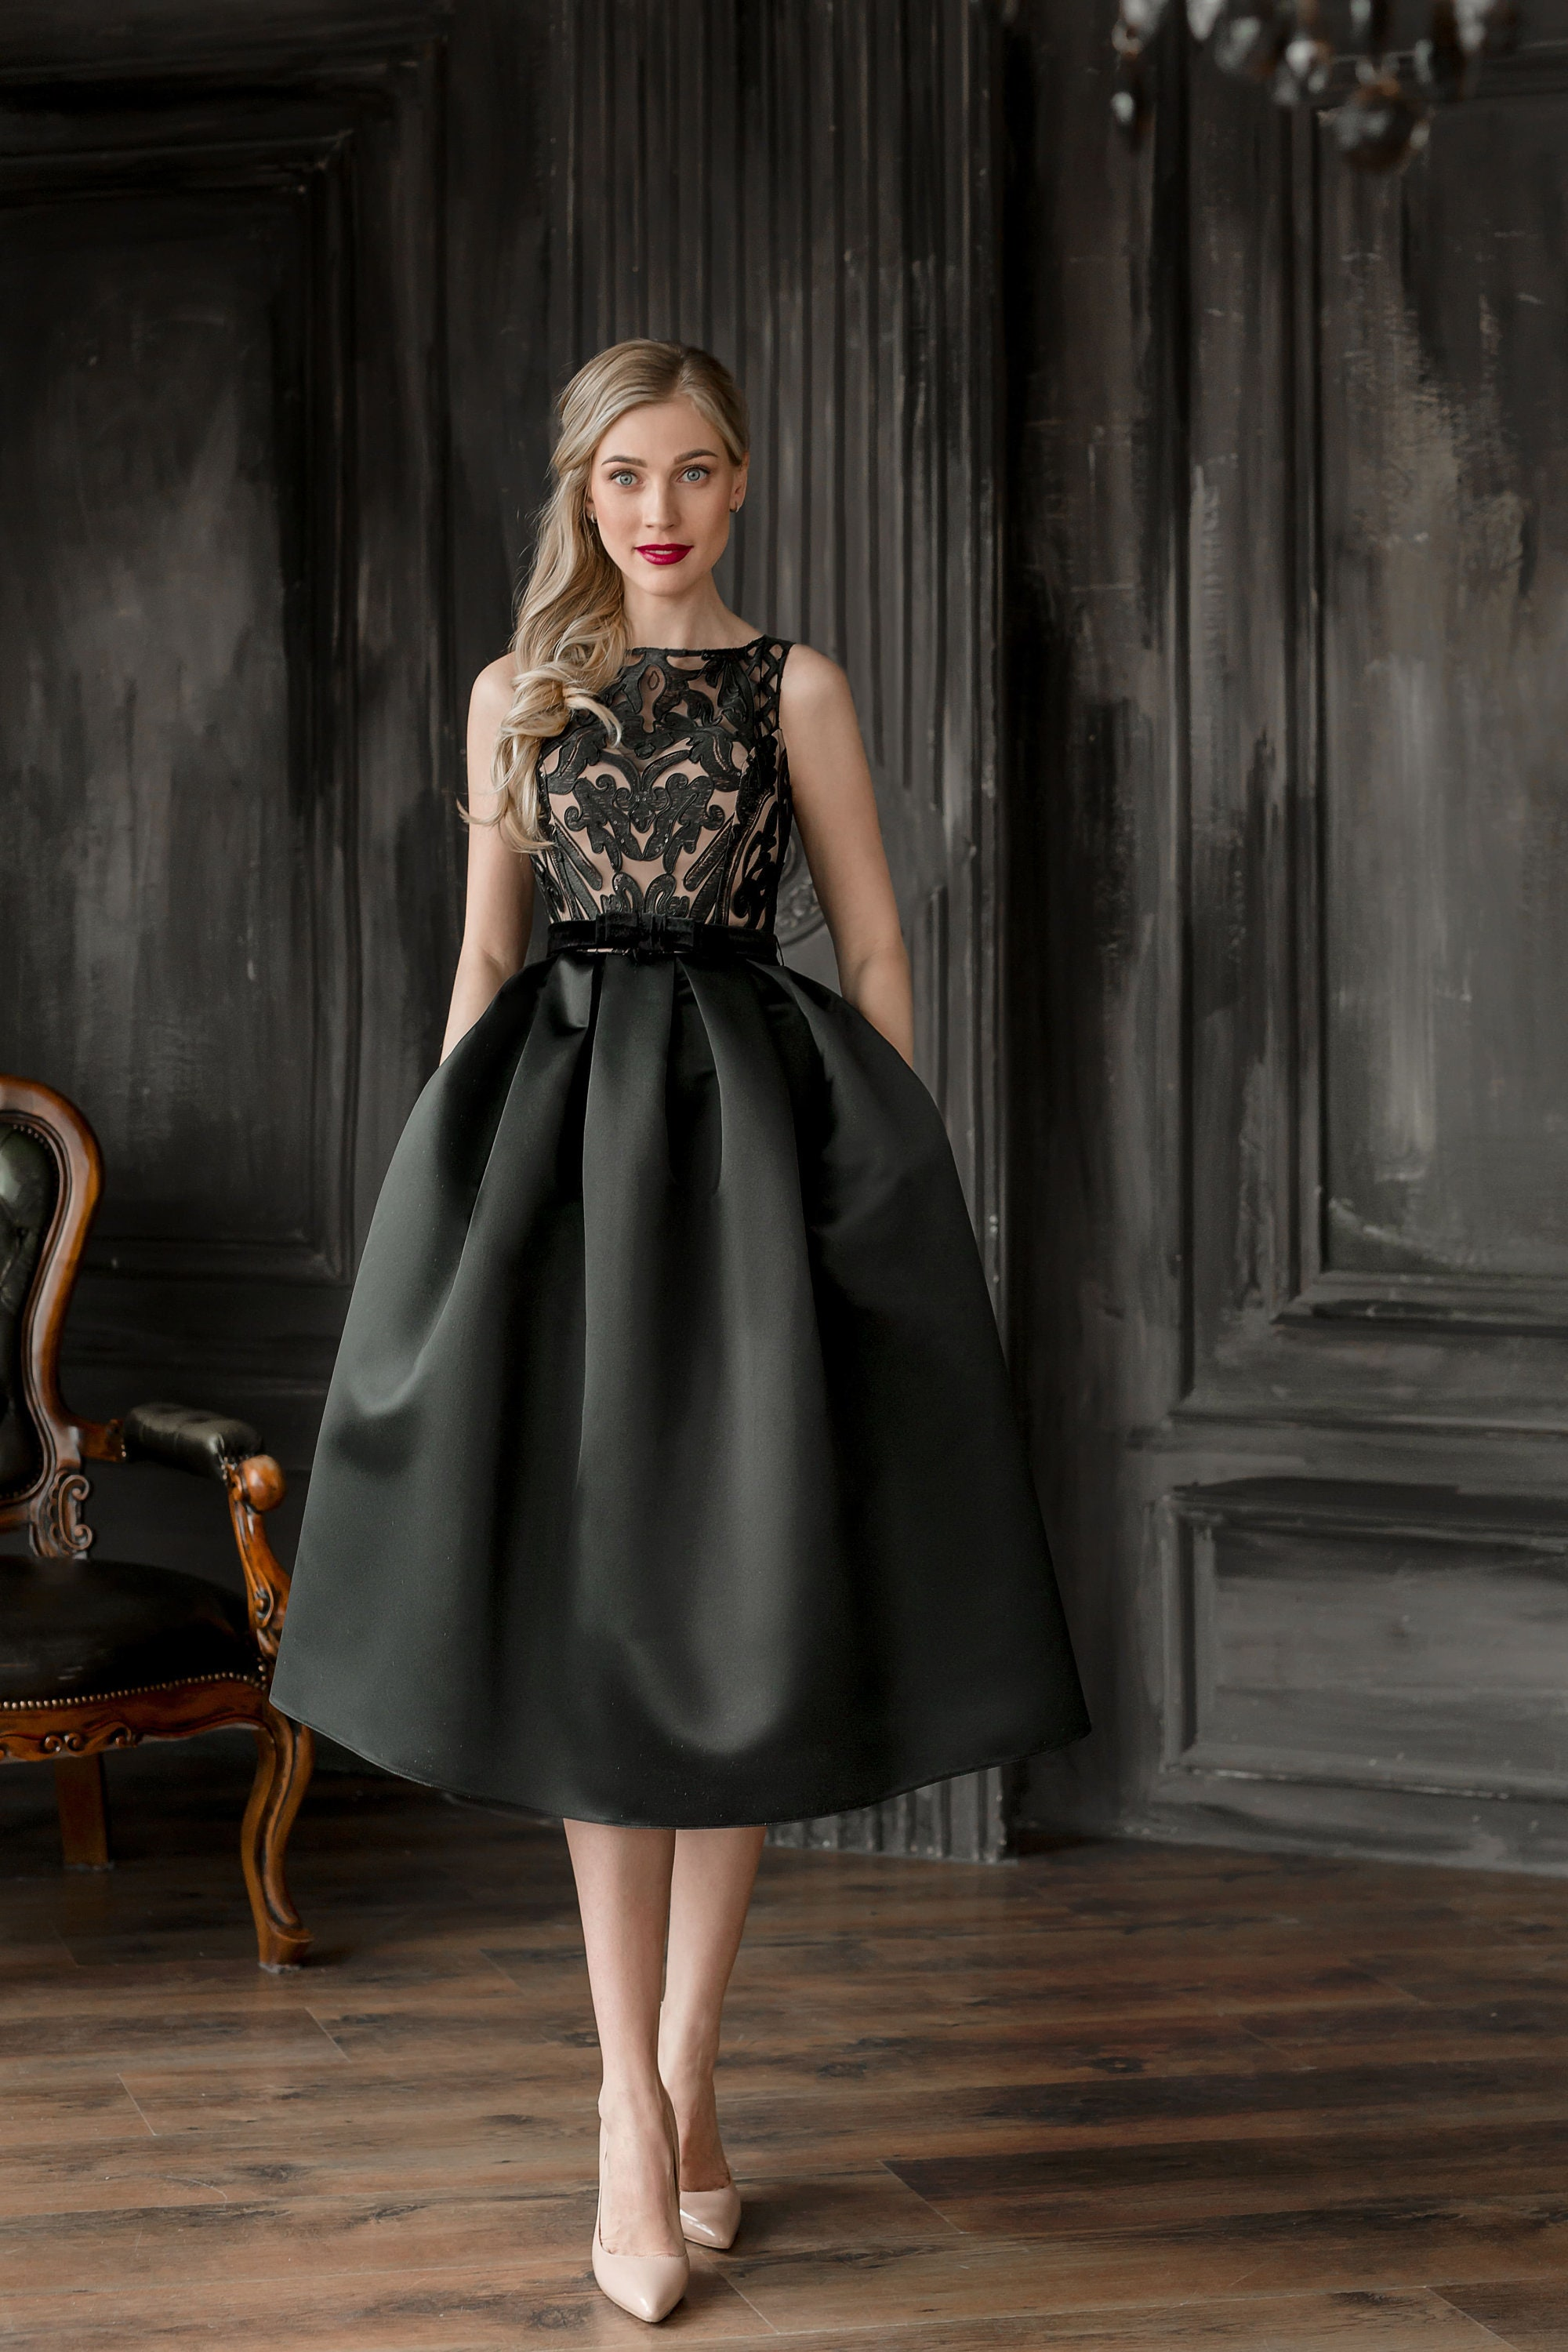 a23b5703f18 Black And Gold Short Formal Dresses